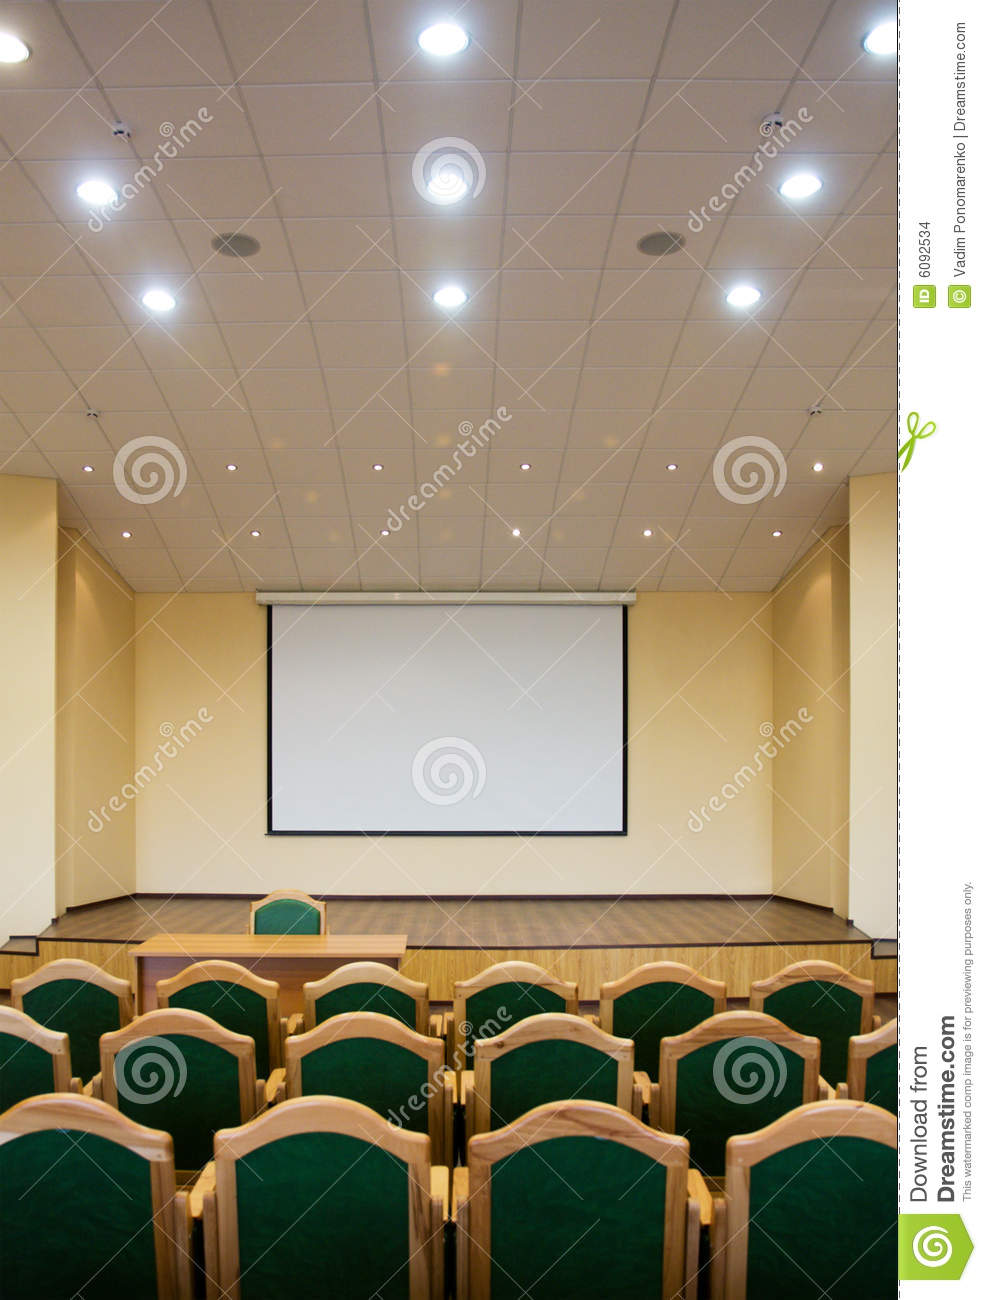 office chair rowing antique folding rocking auditorium hall with projection screen stock images - image: 6092534